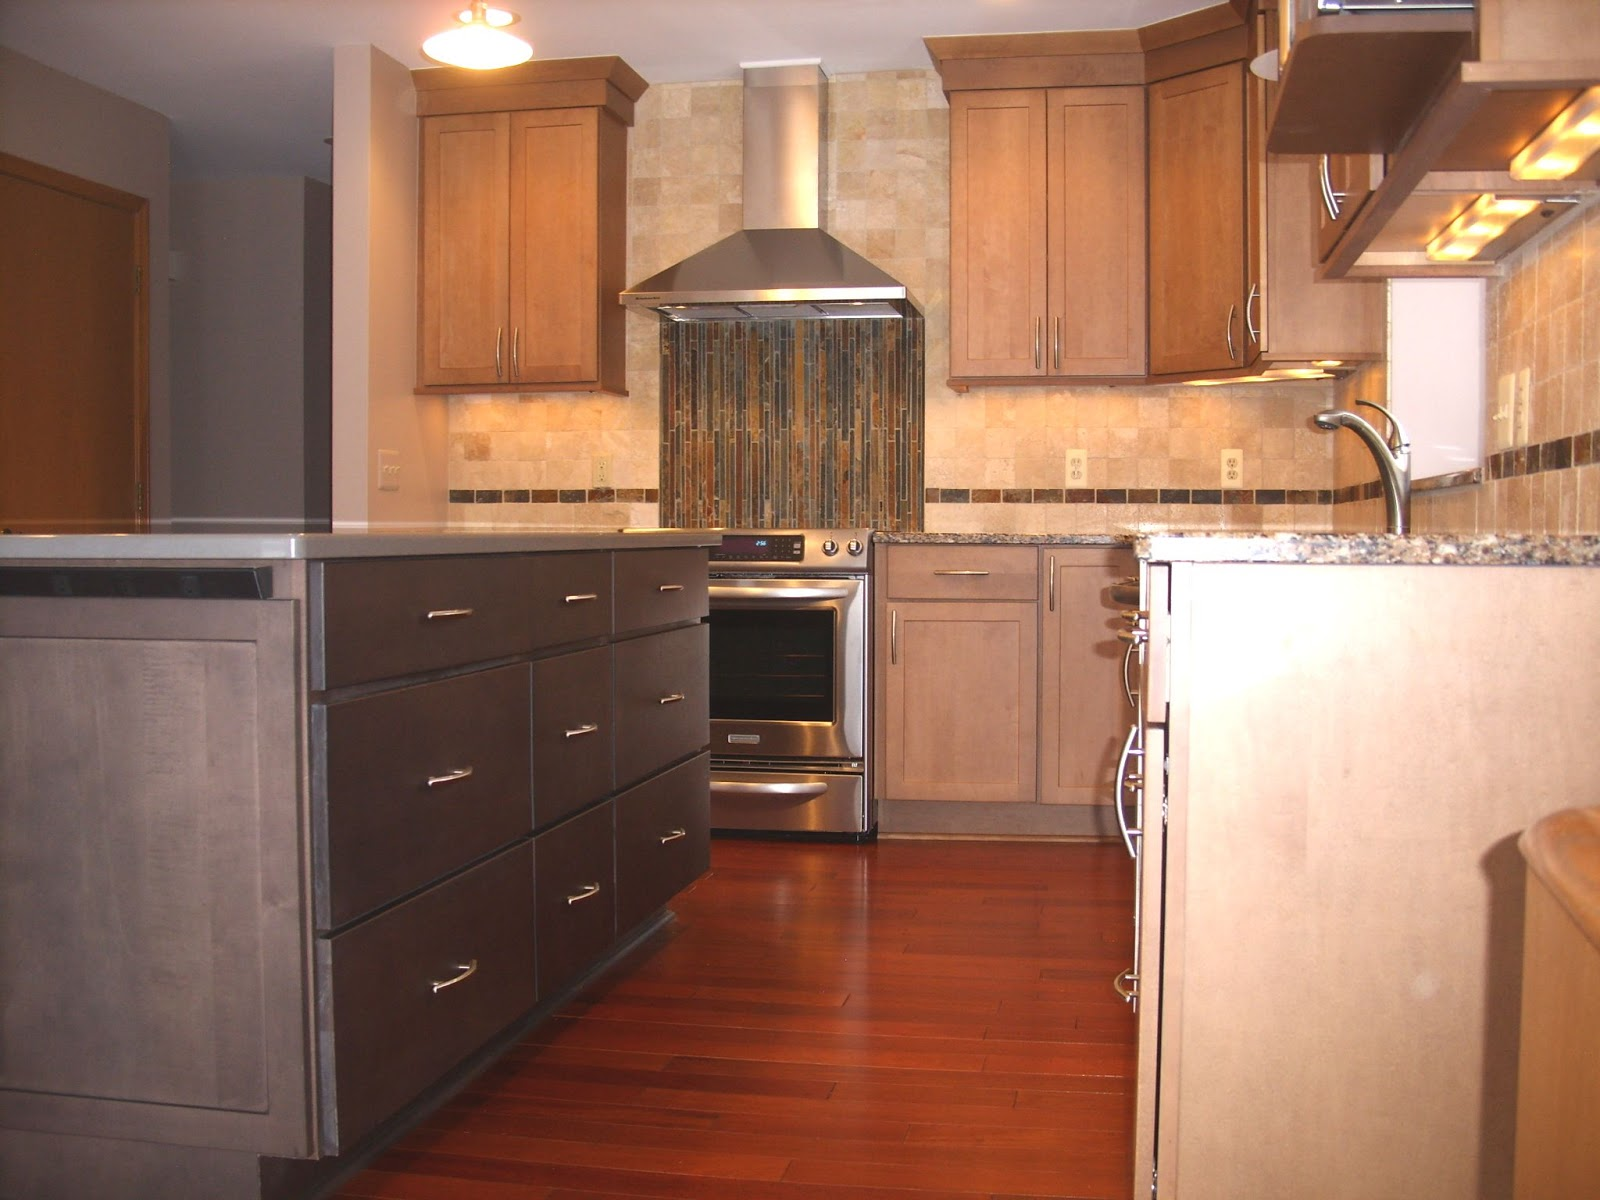 Borchert Building Blog: Difference between Particle Board ...